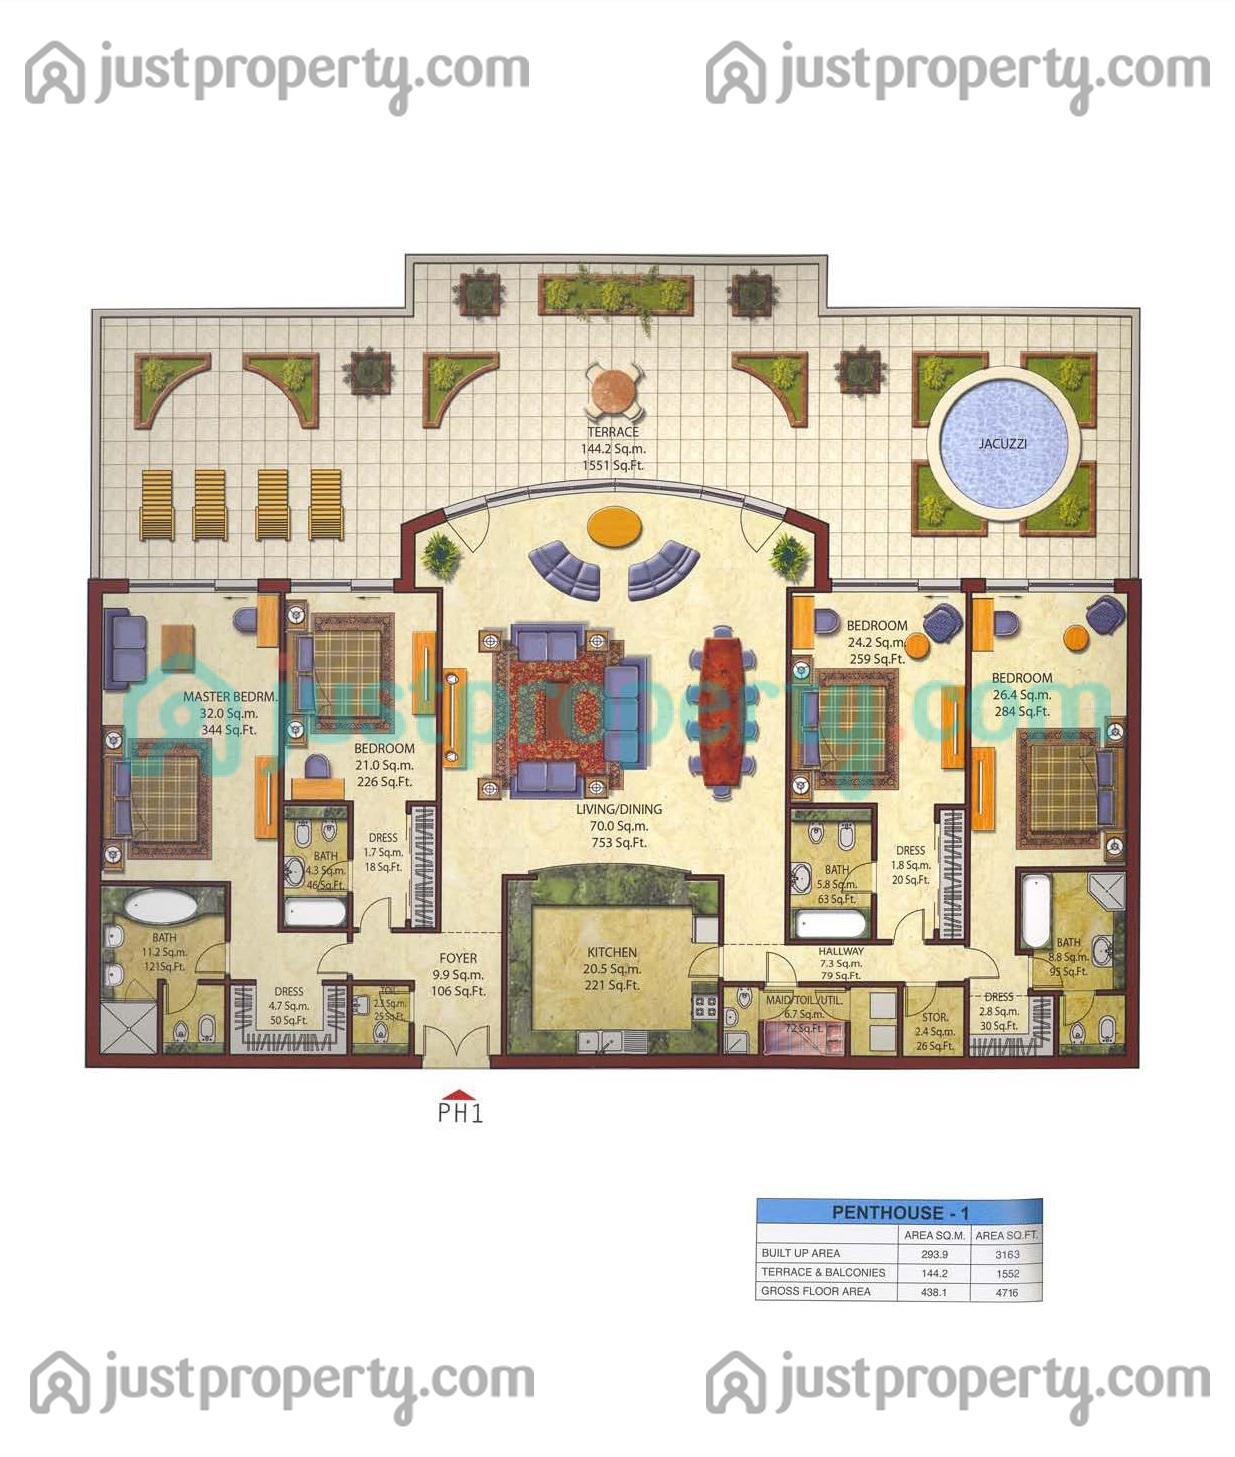 Penthouses Floor Plans Justproperty Com